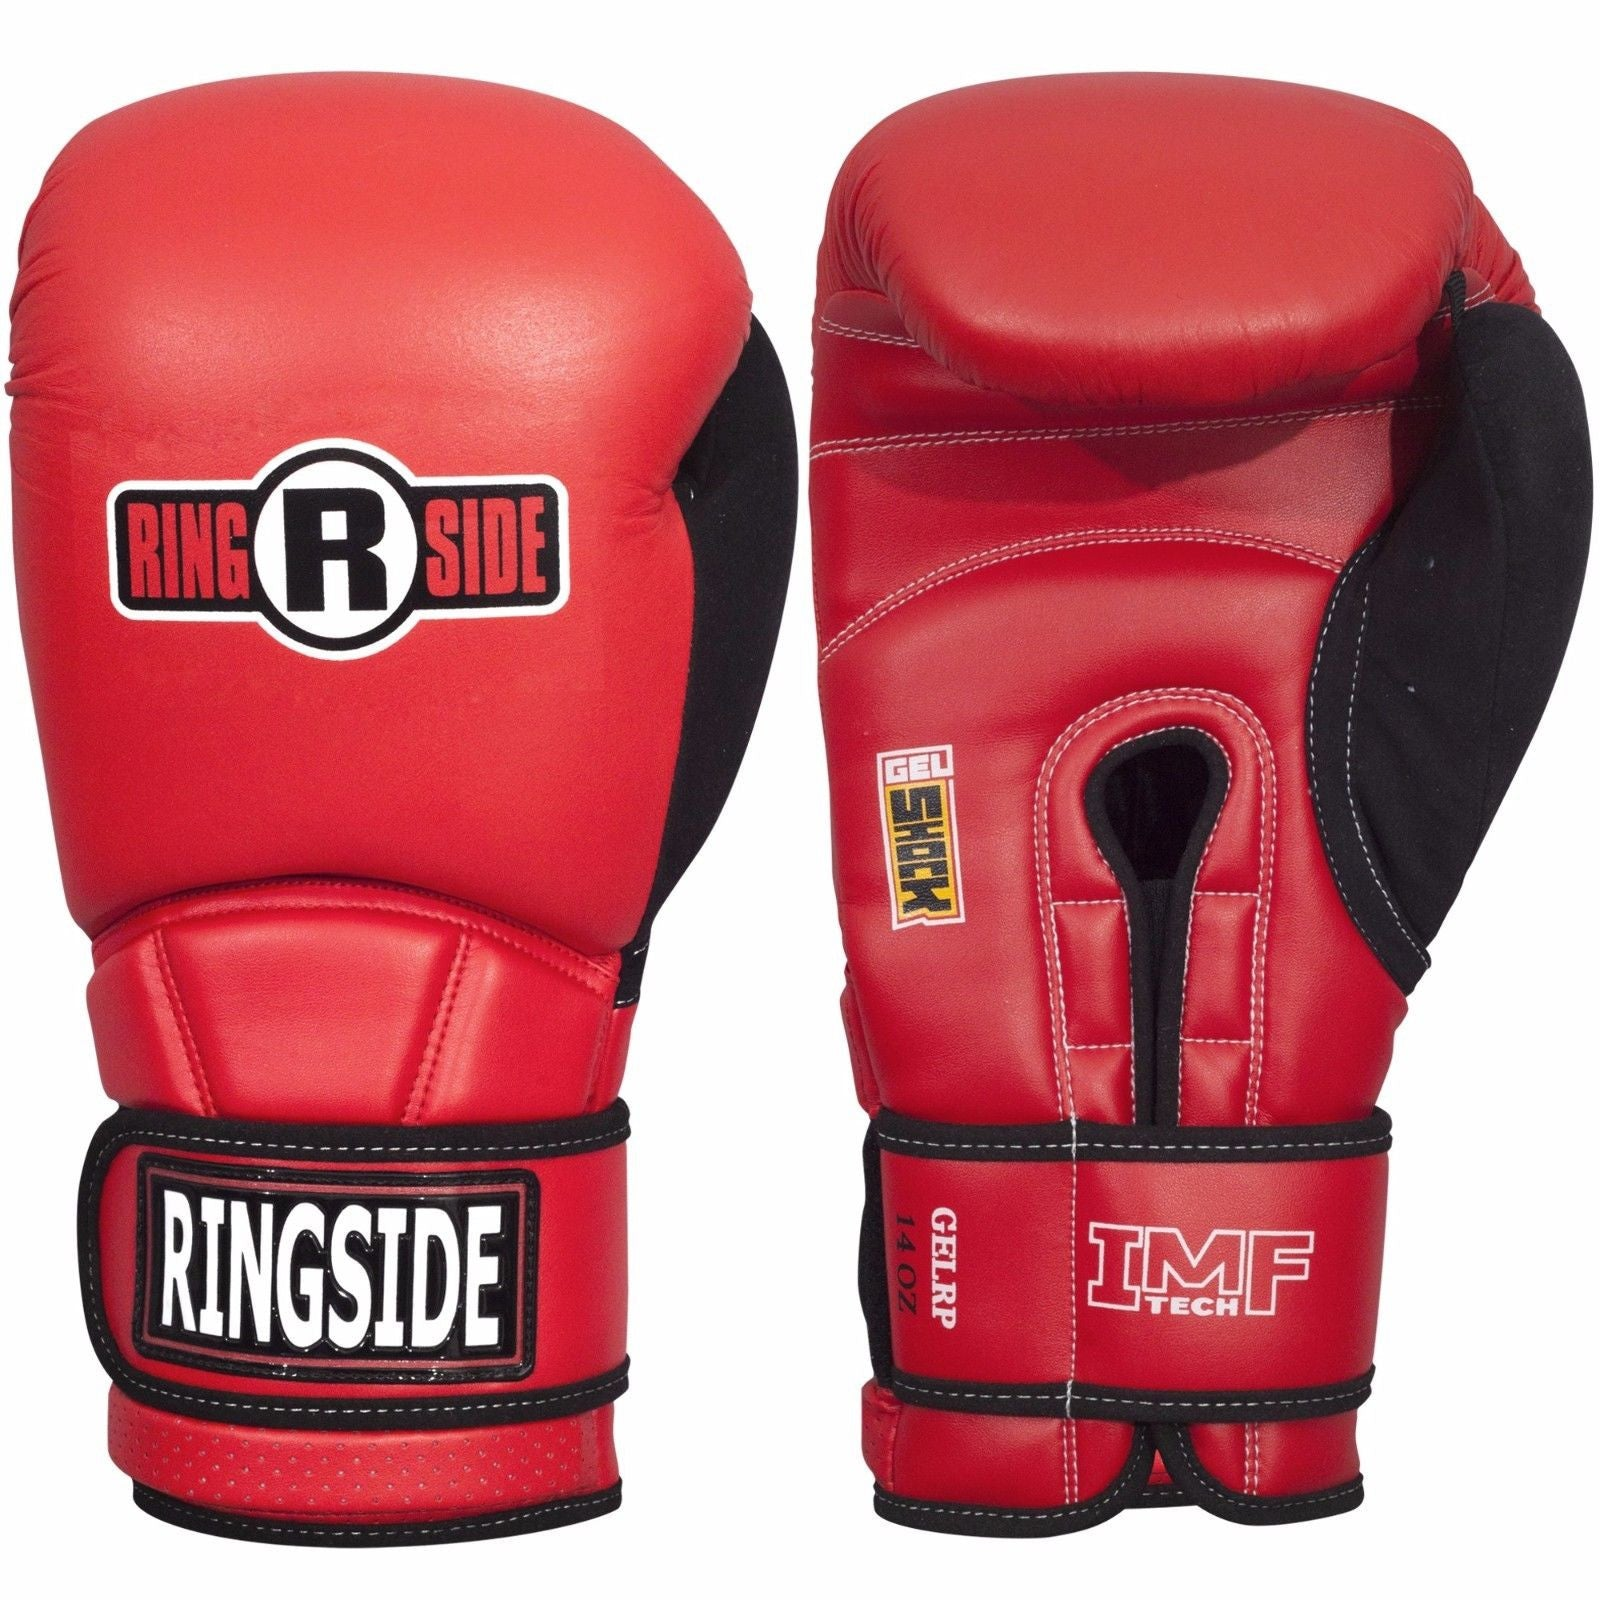 RINGSIDE GLOVES GELRP SUEDE THUMB RED / BLACK - MSM FIGHT SHOP